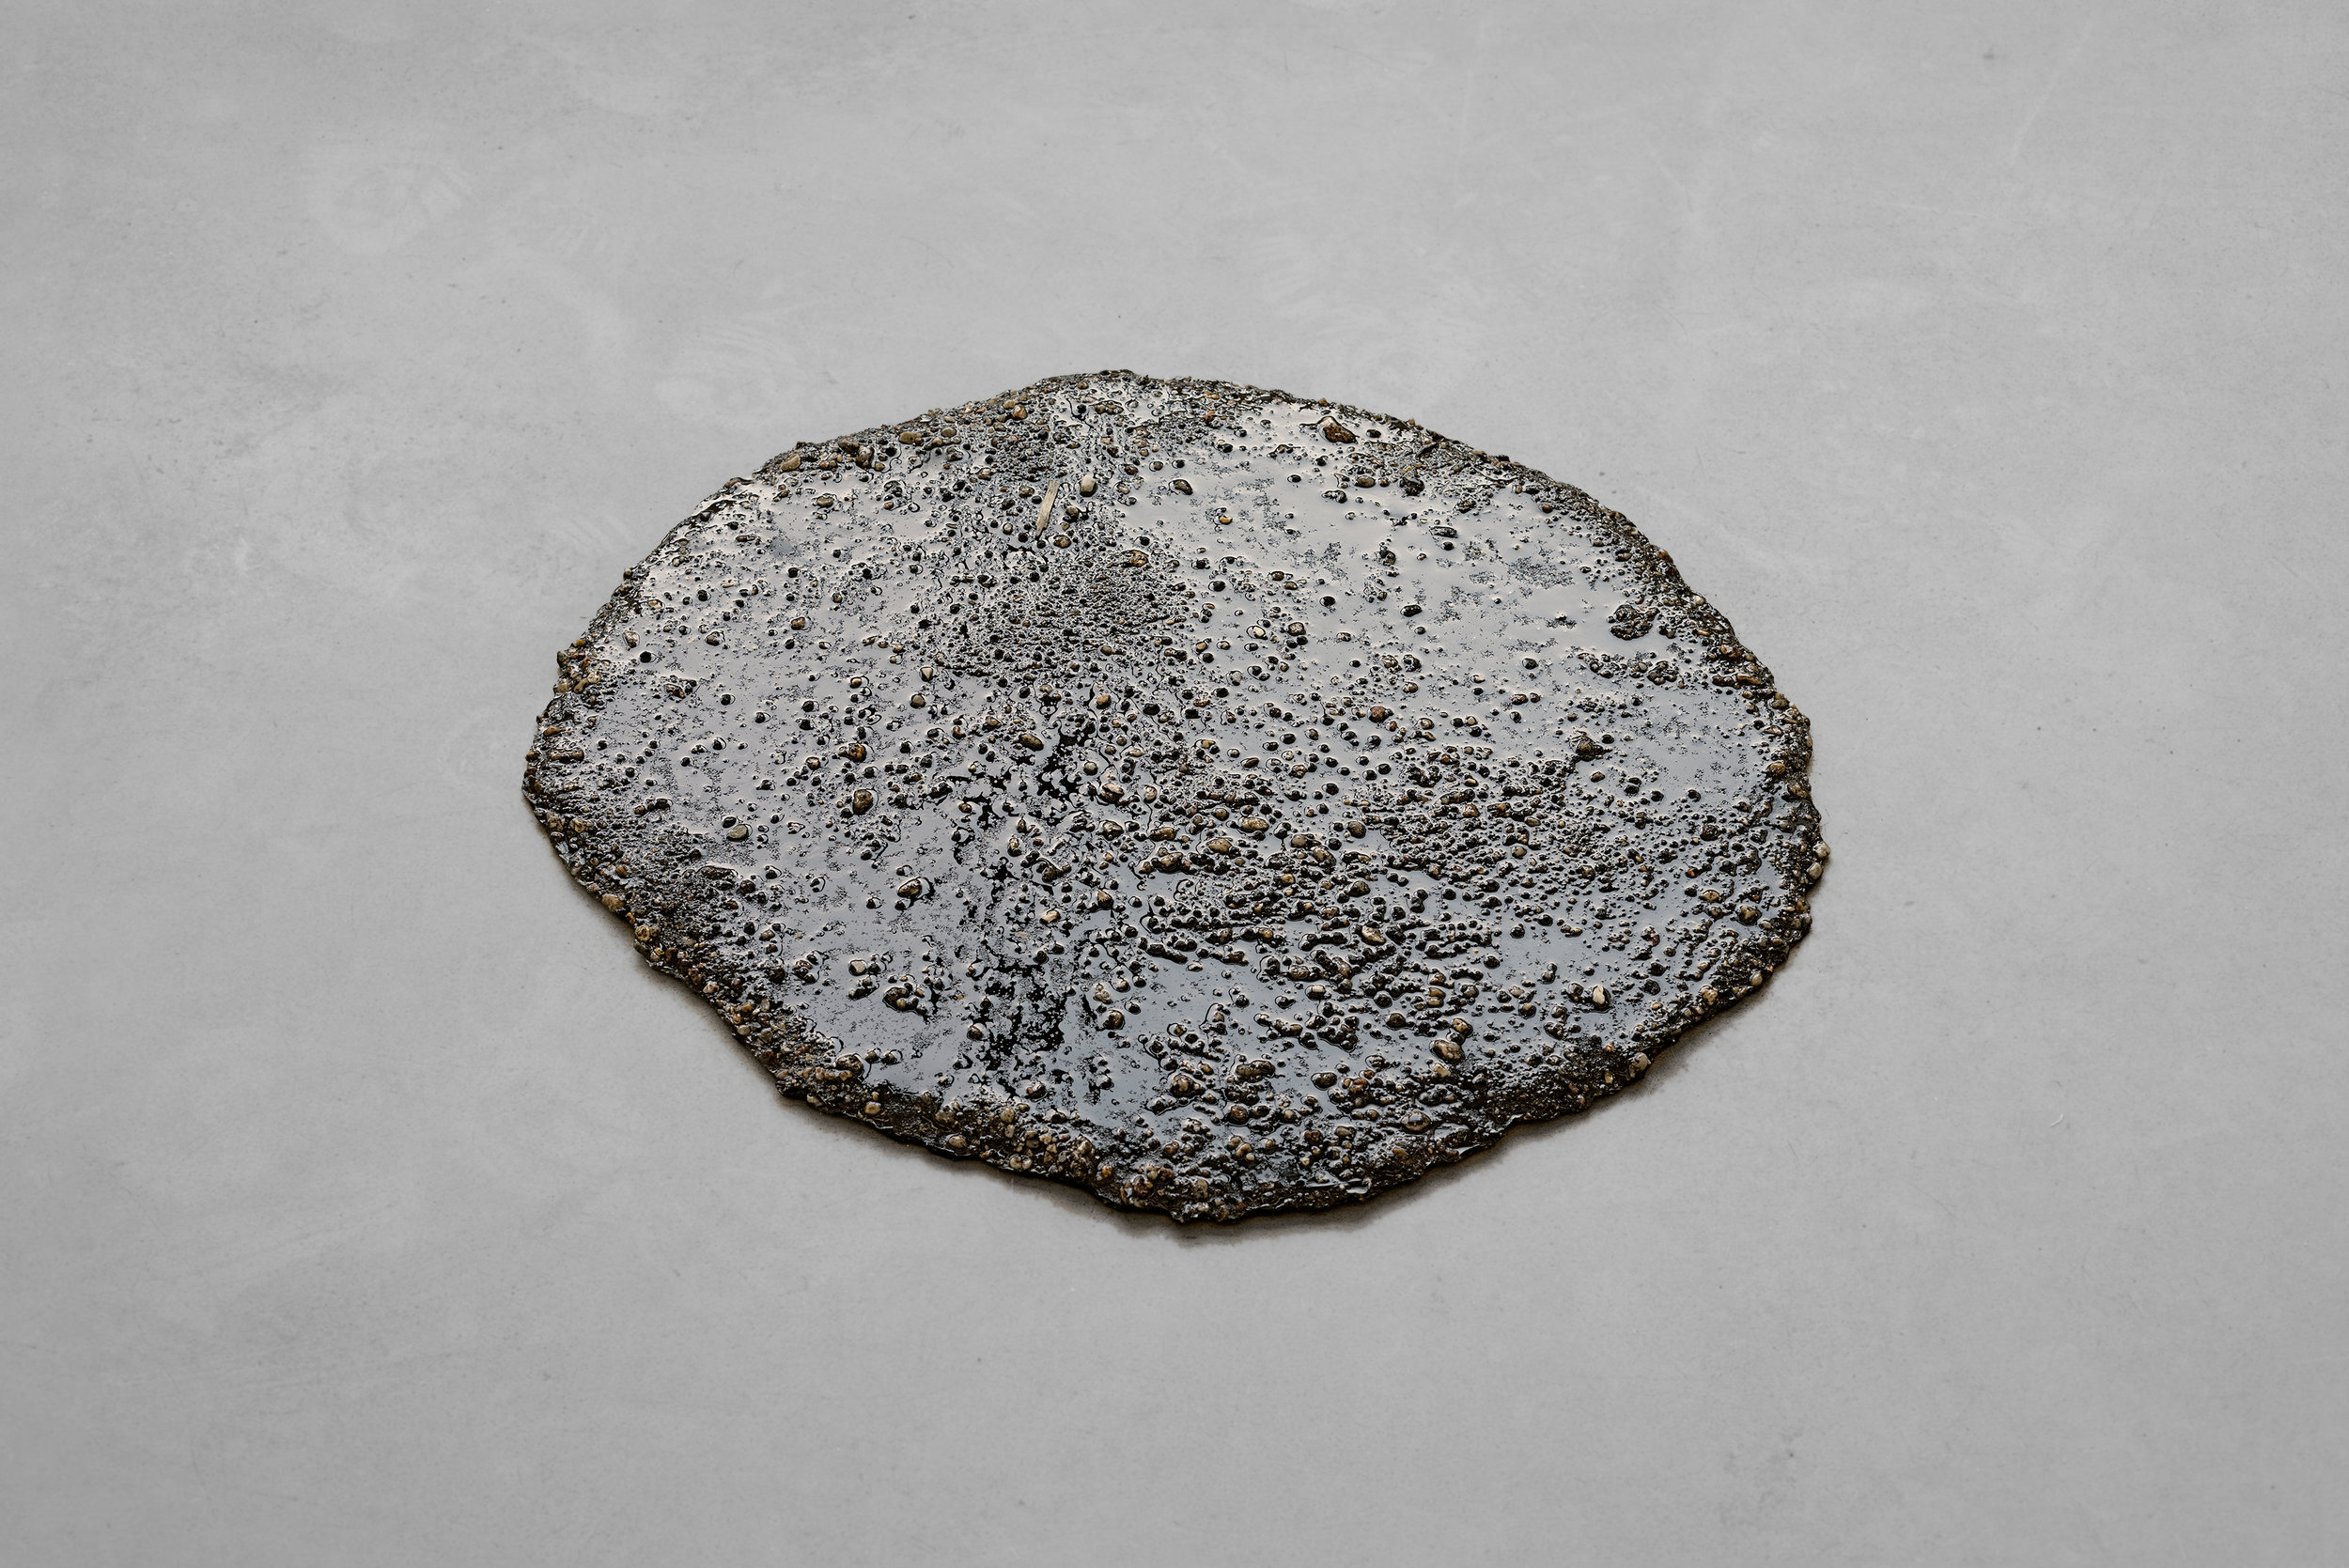 Marlie Mul, Puddle (Brown Grit), 2013 sand, stones, resin diam. 55 cm - 22 inches